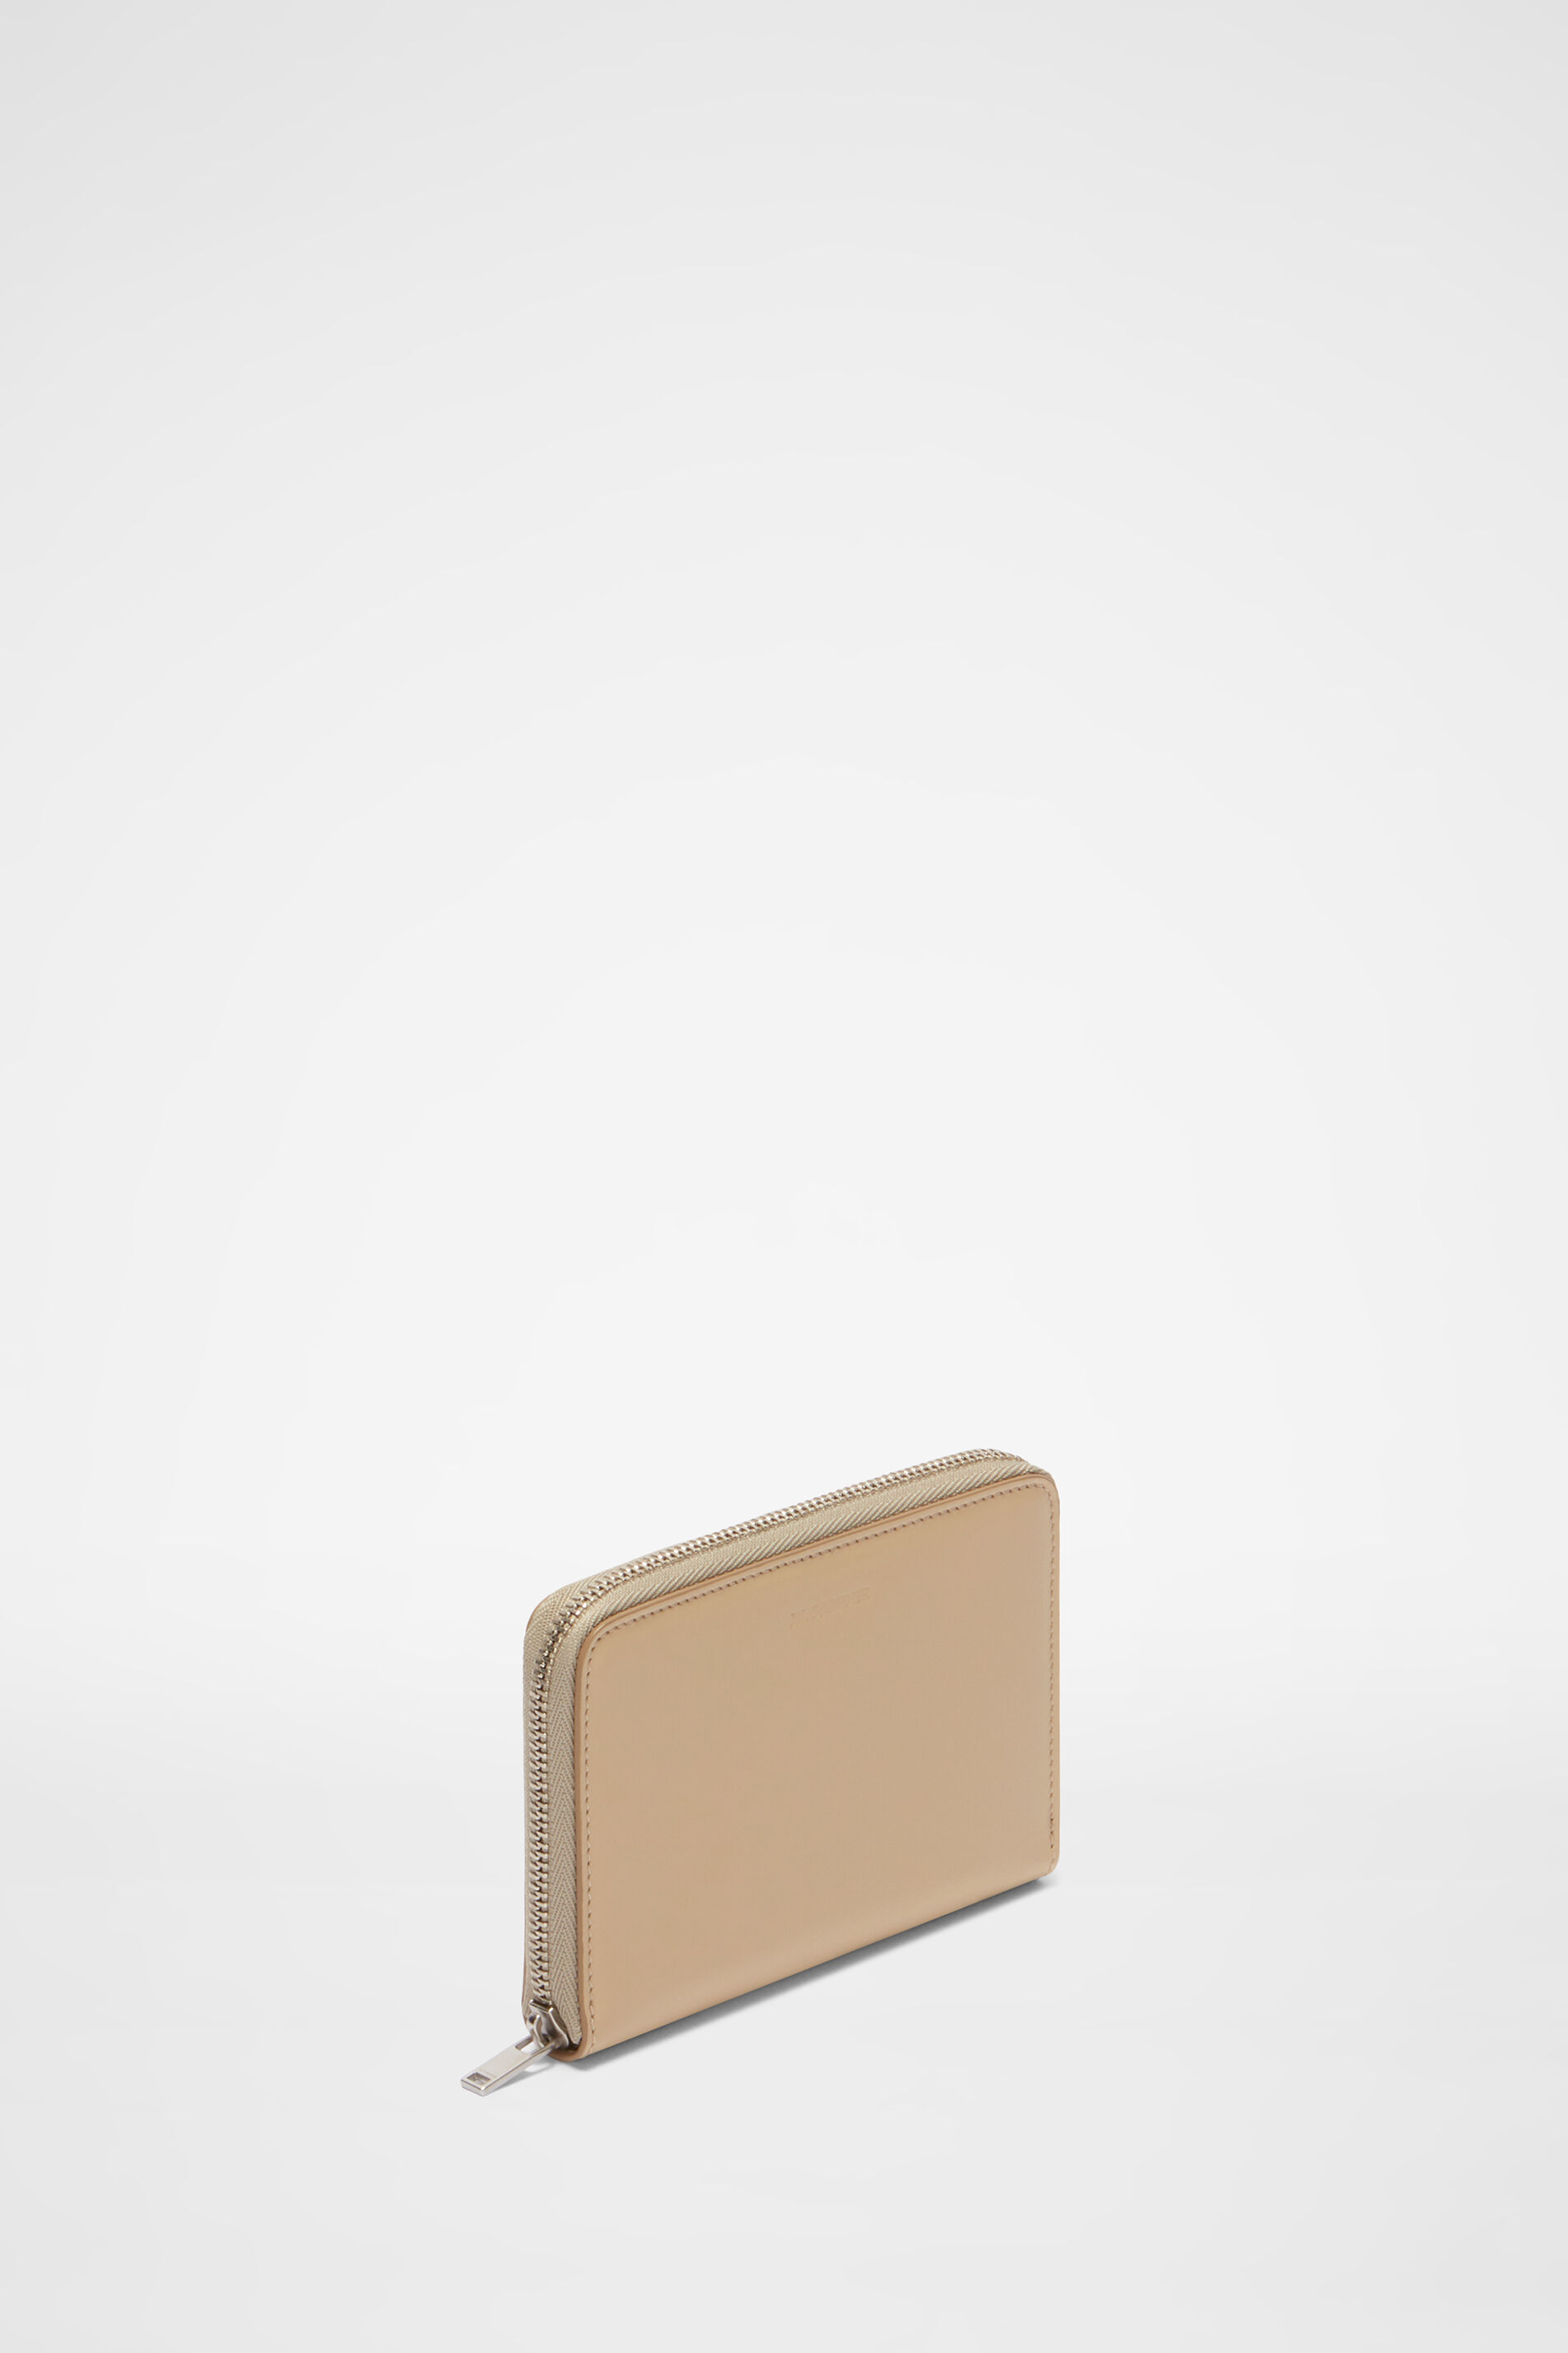 Zip Around Pocket Wallet, dark beige, large